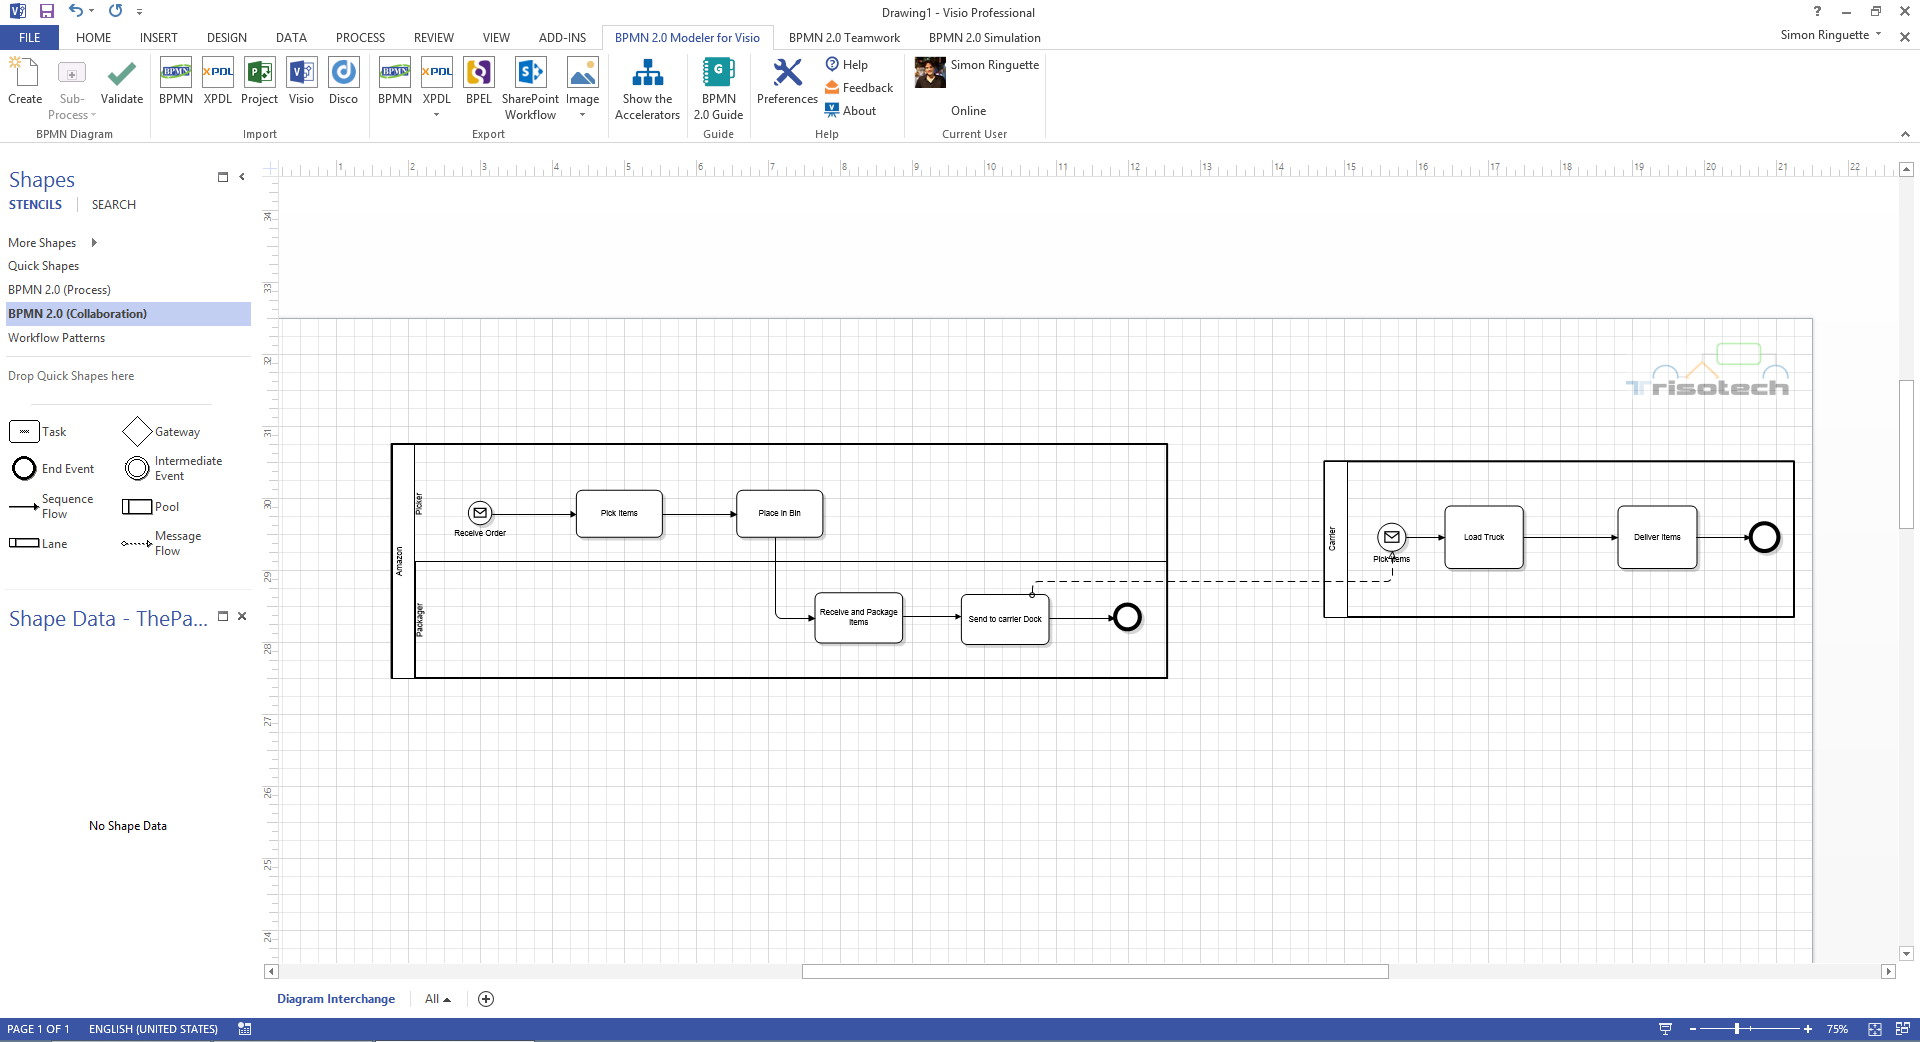 Overview of the bpmn miwg demo in berlin updated bpm tips part 3 4 trisotech screenshot pooptronica Image collections